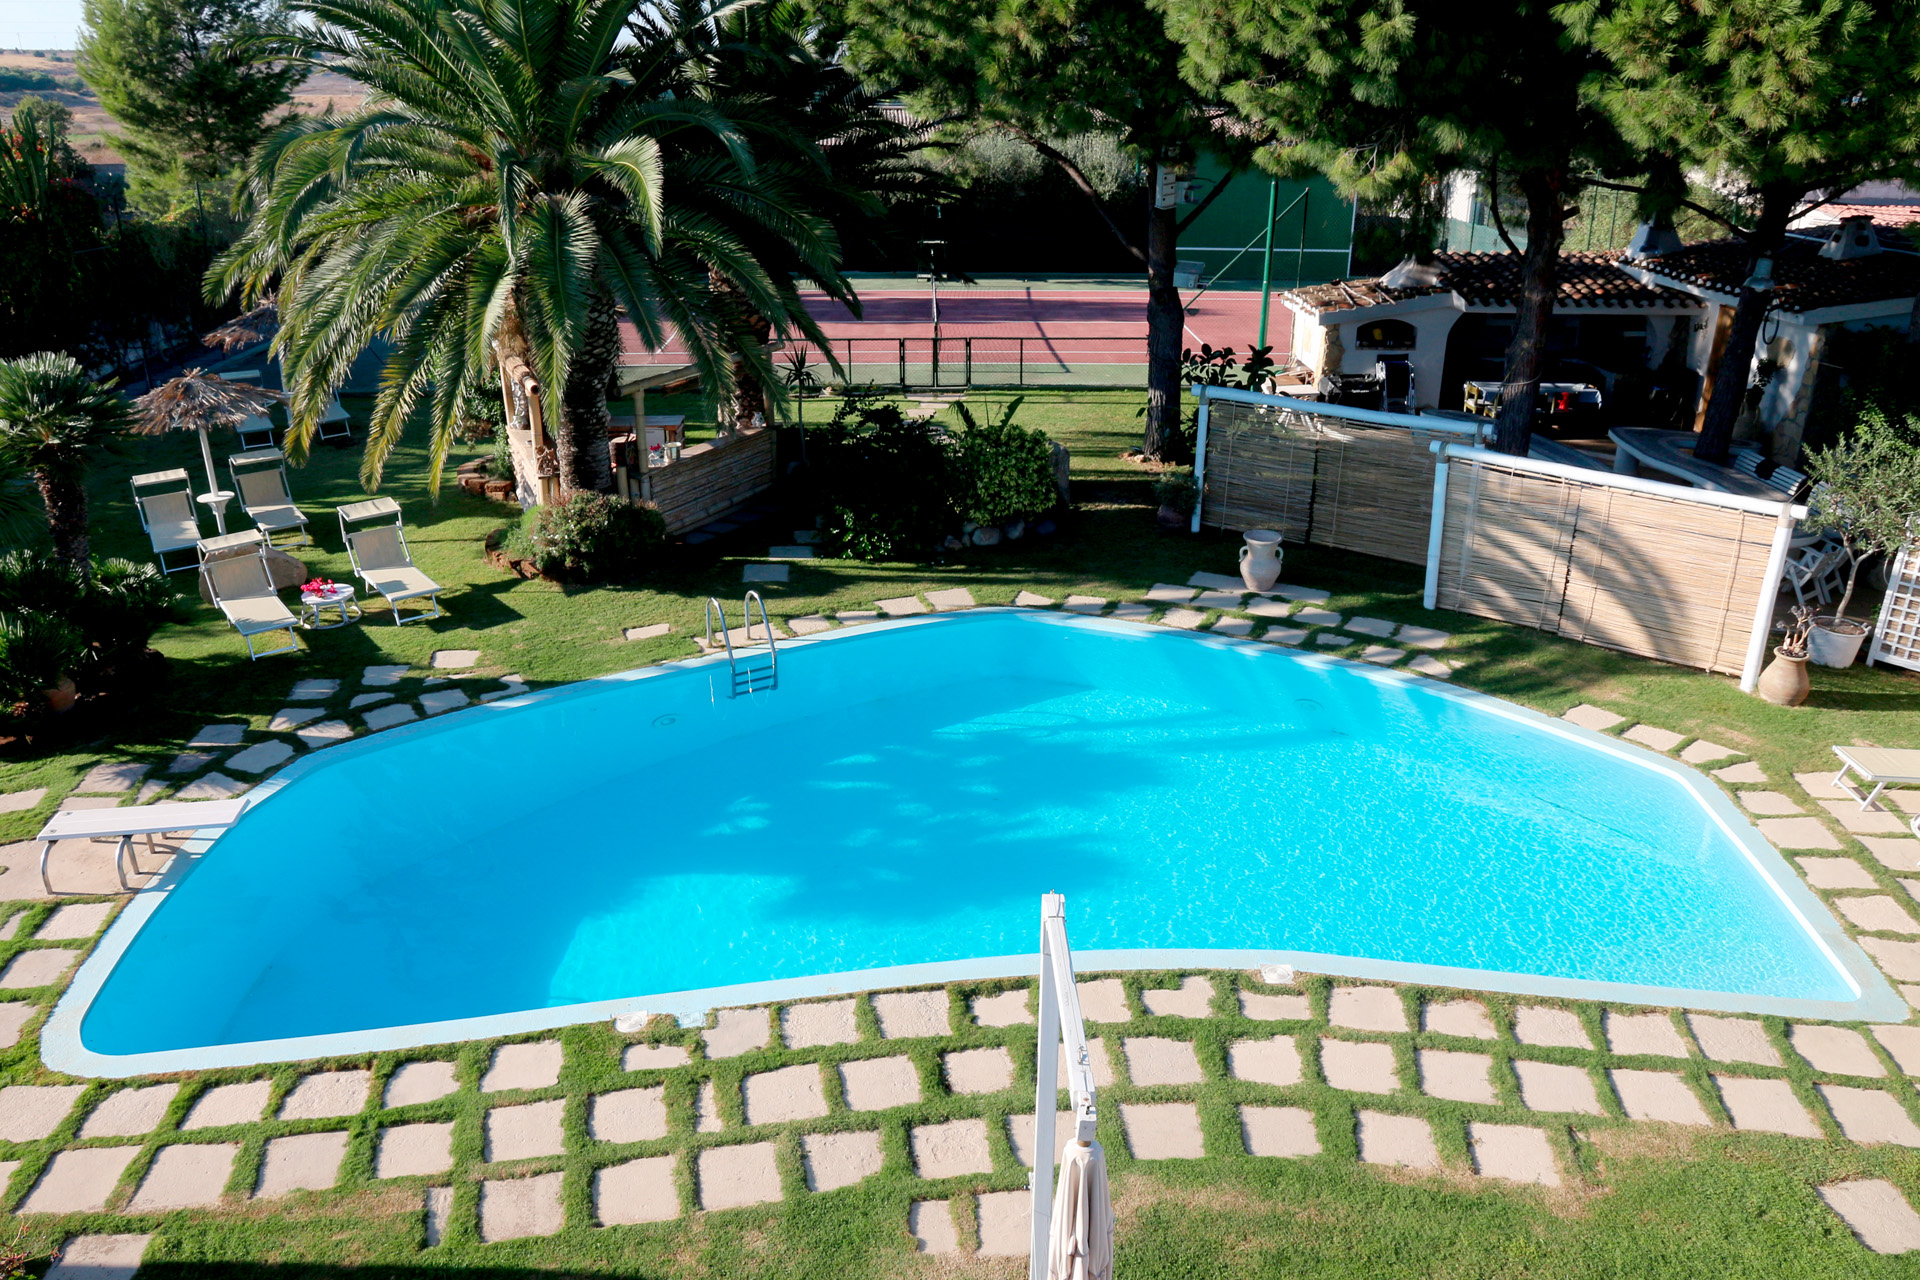 large swimming pool - tennis court and part of the garden